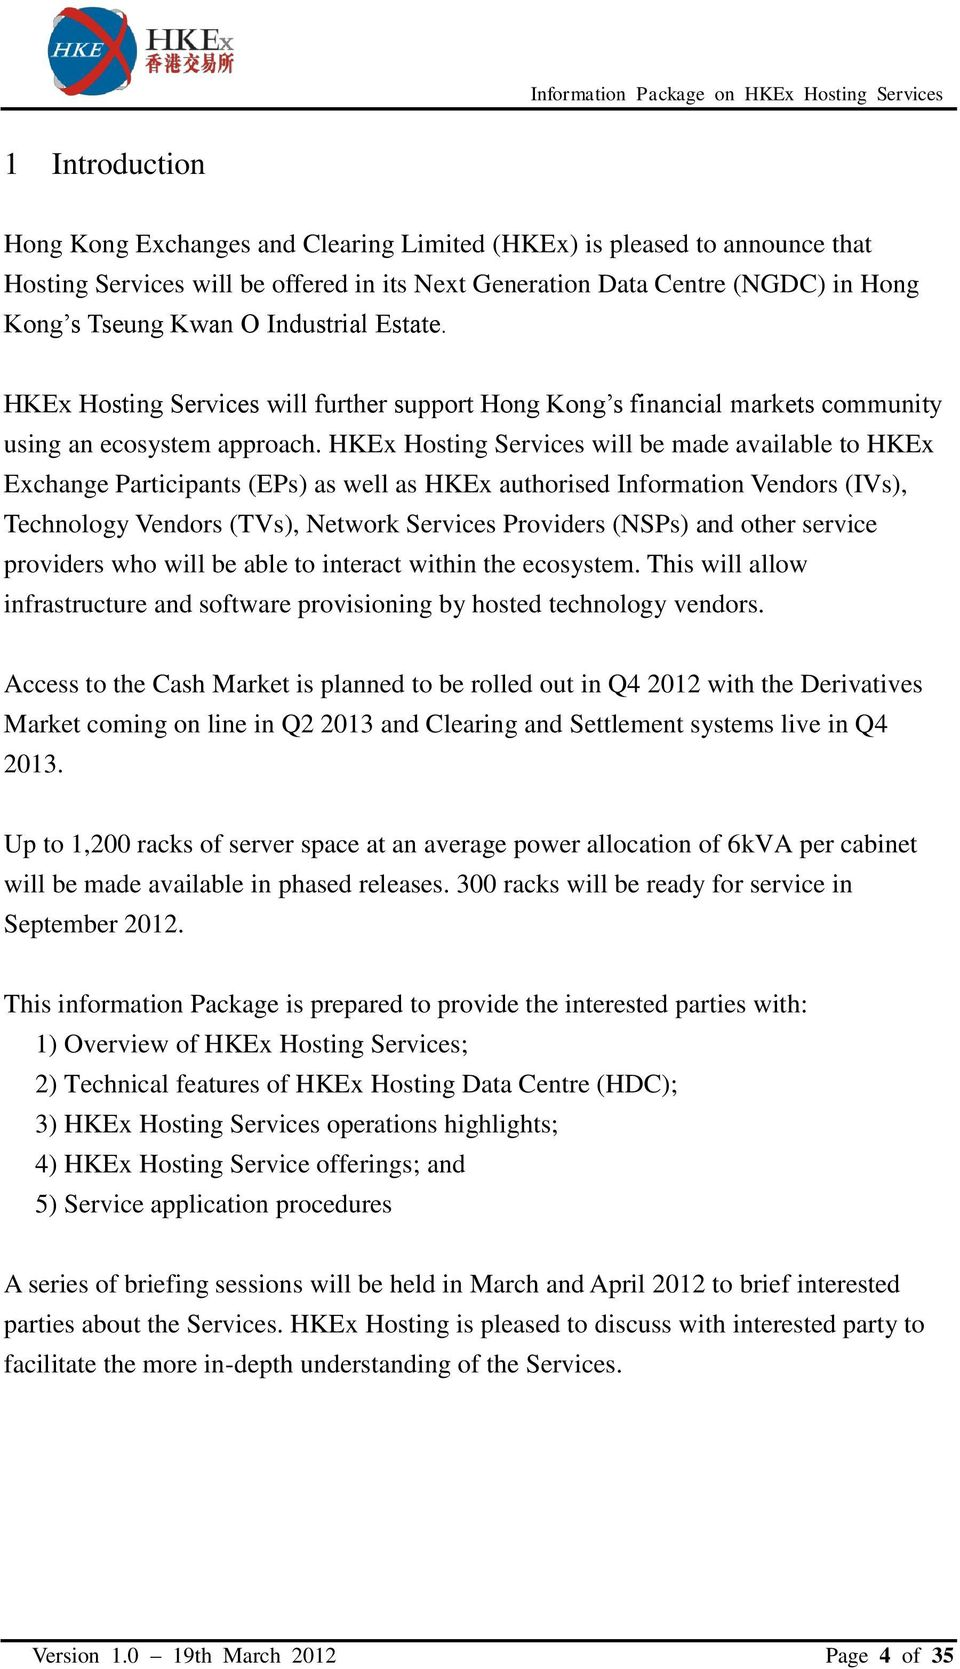 HKEx Hosting Services will be made available to HKEx Exchange Participants (EPs) as well as HKEx authorised Information Vendors (IVs), Technology Vendors (TVs), Network Services Providers (NSPs) and